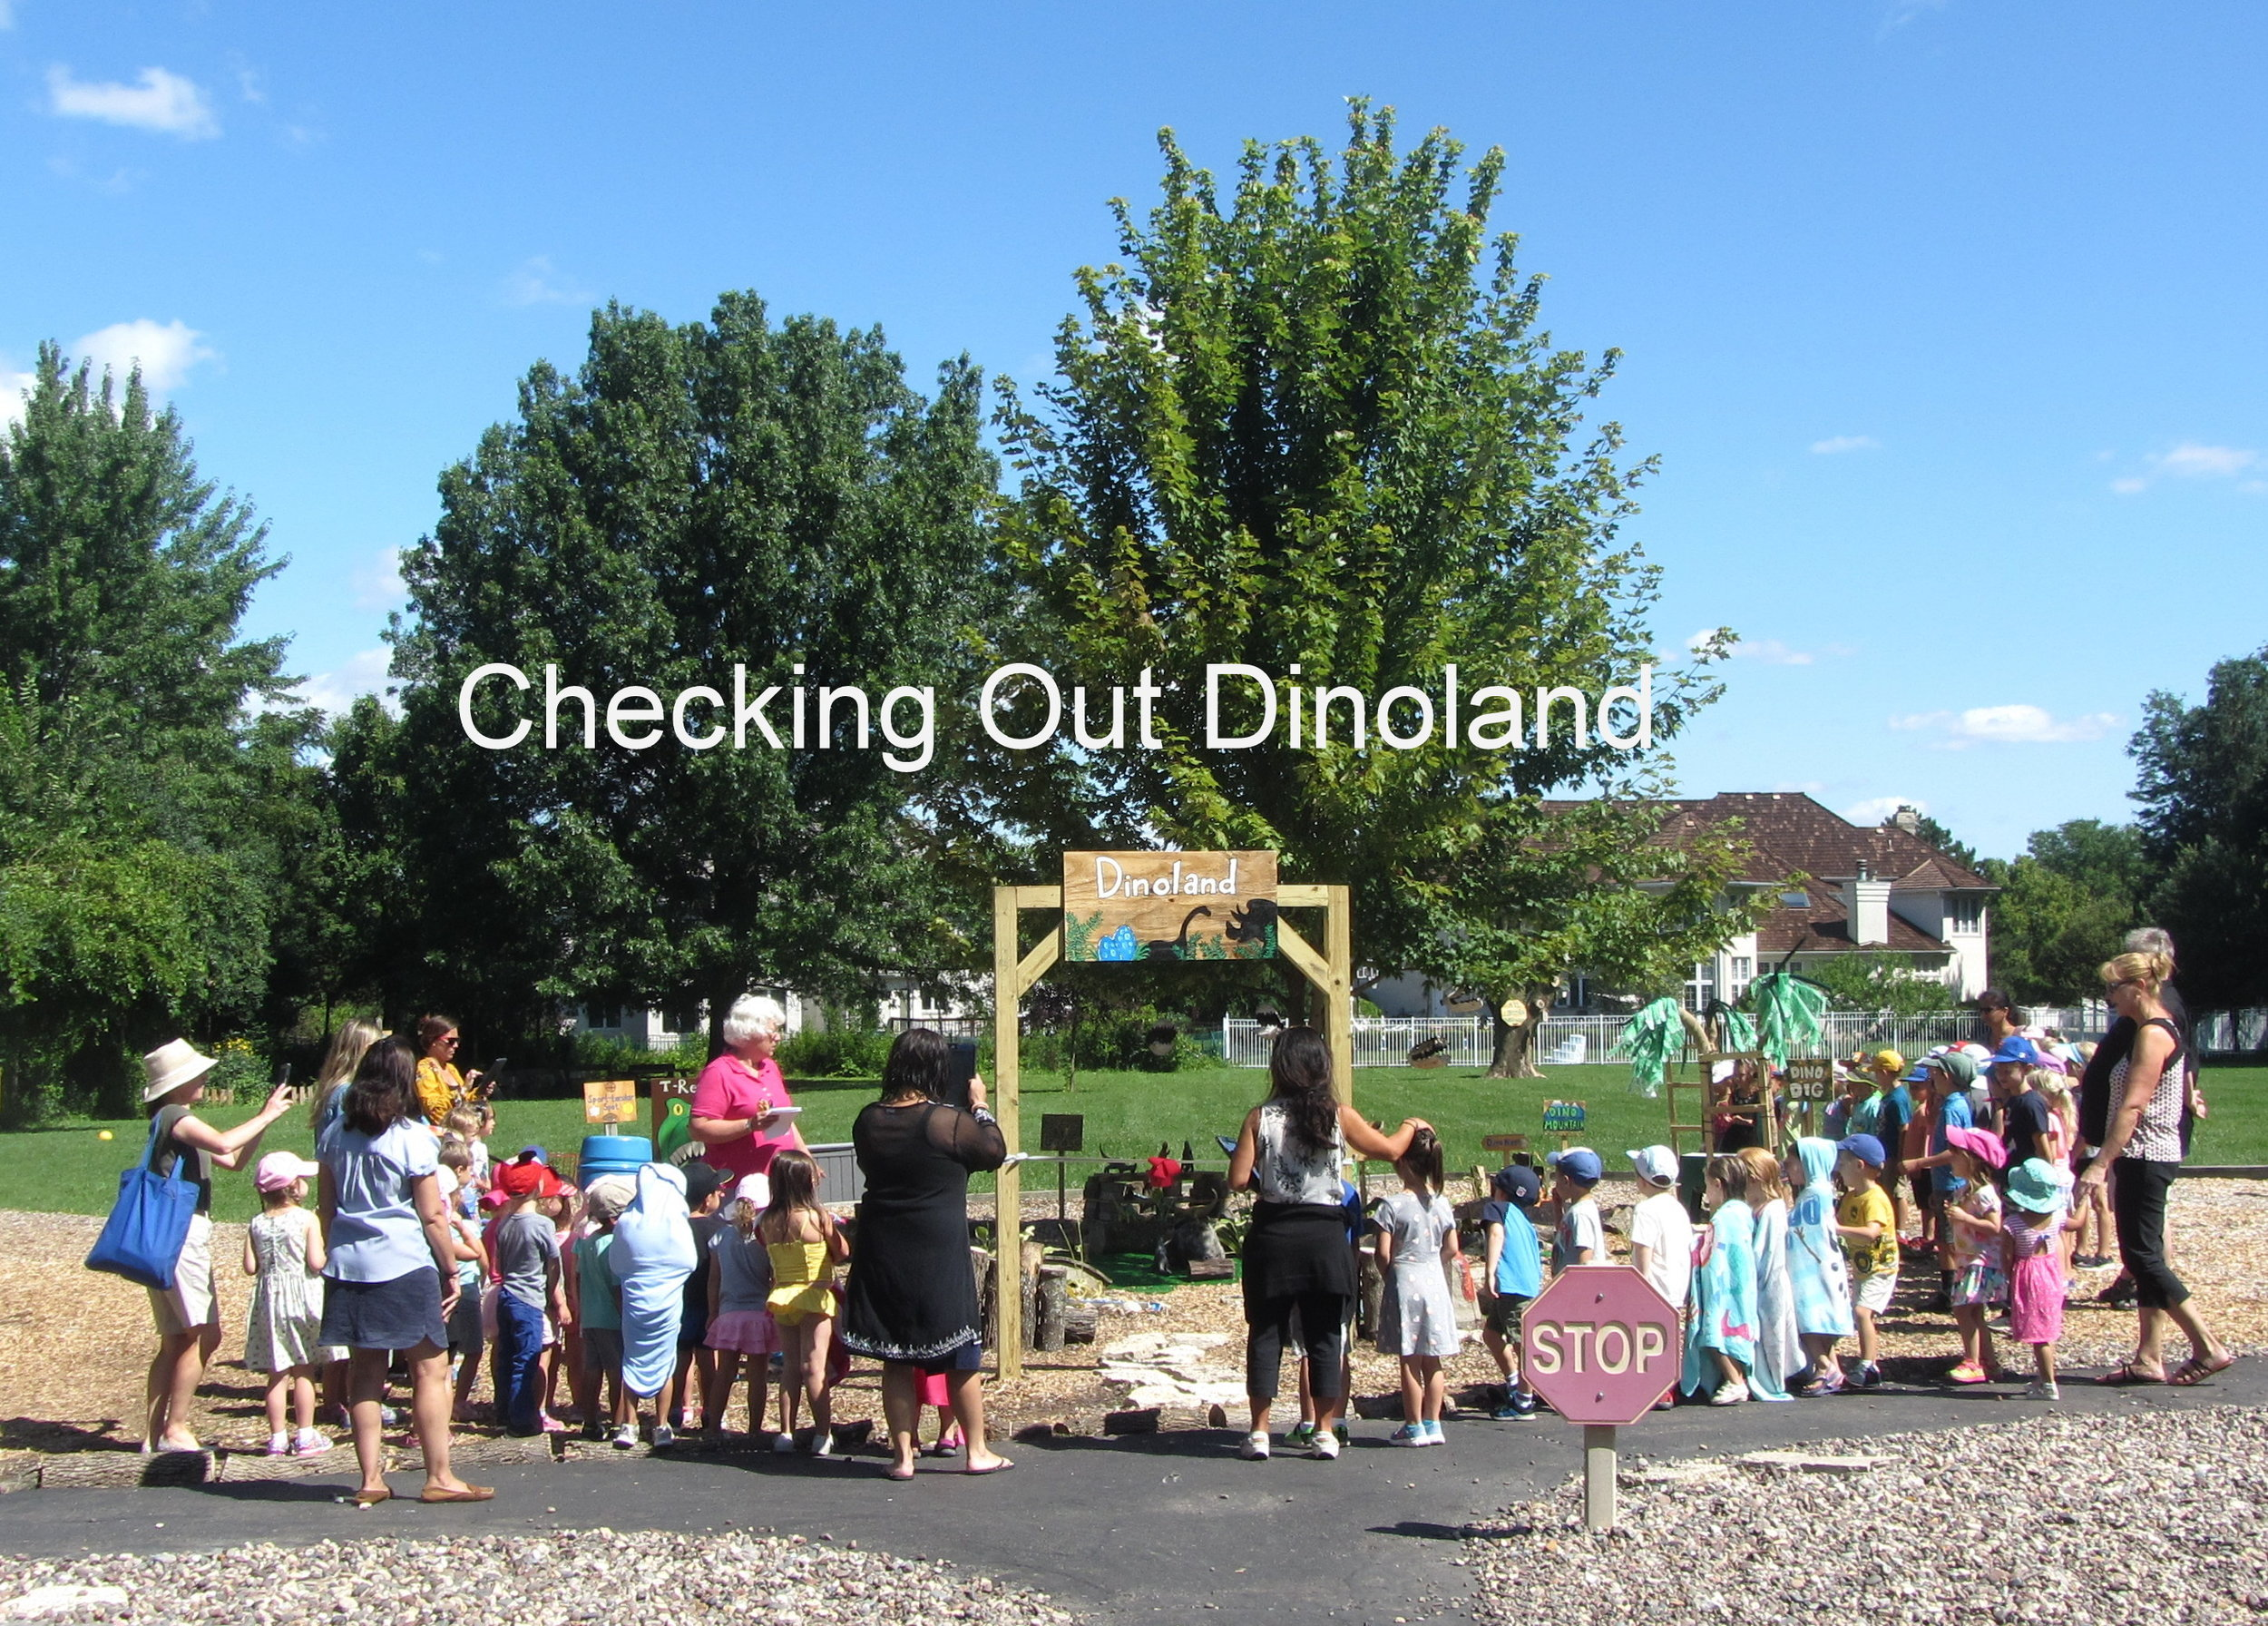 2 Dinoland - Checking it Out.JPG